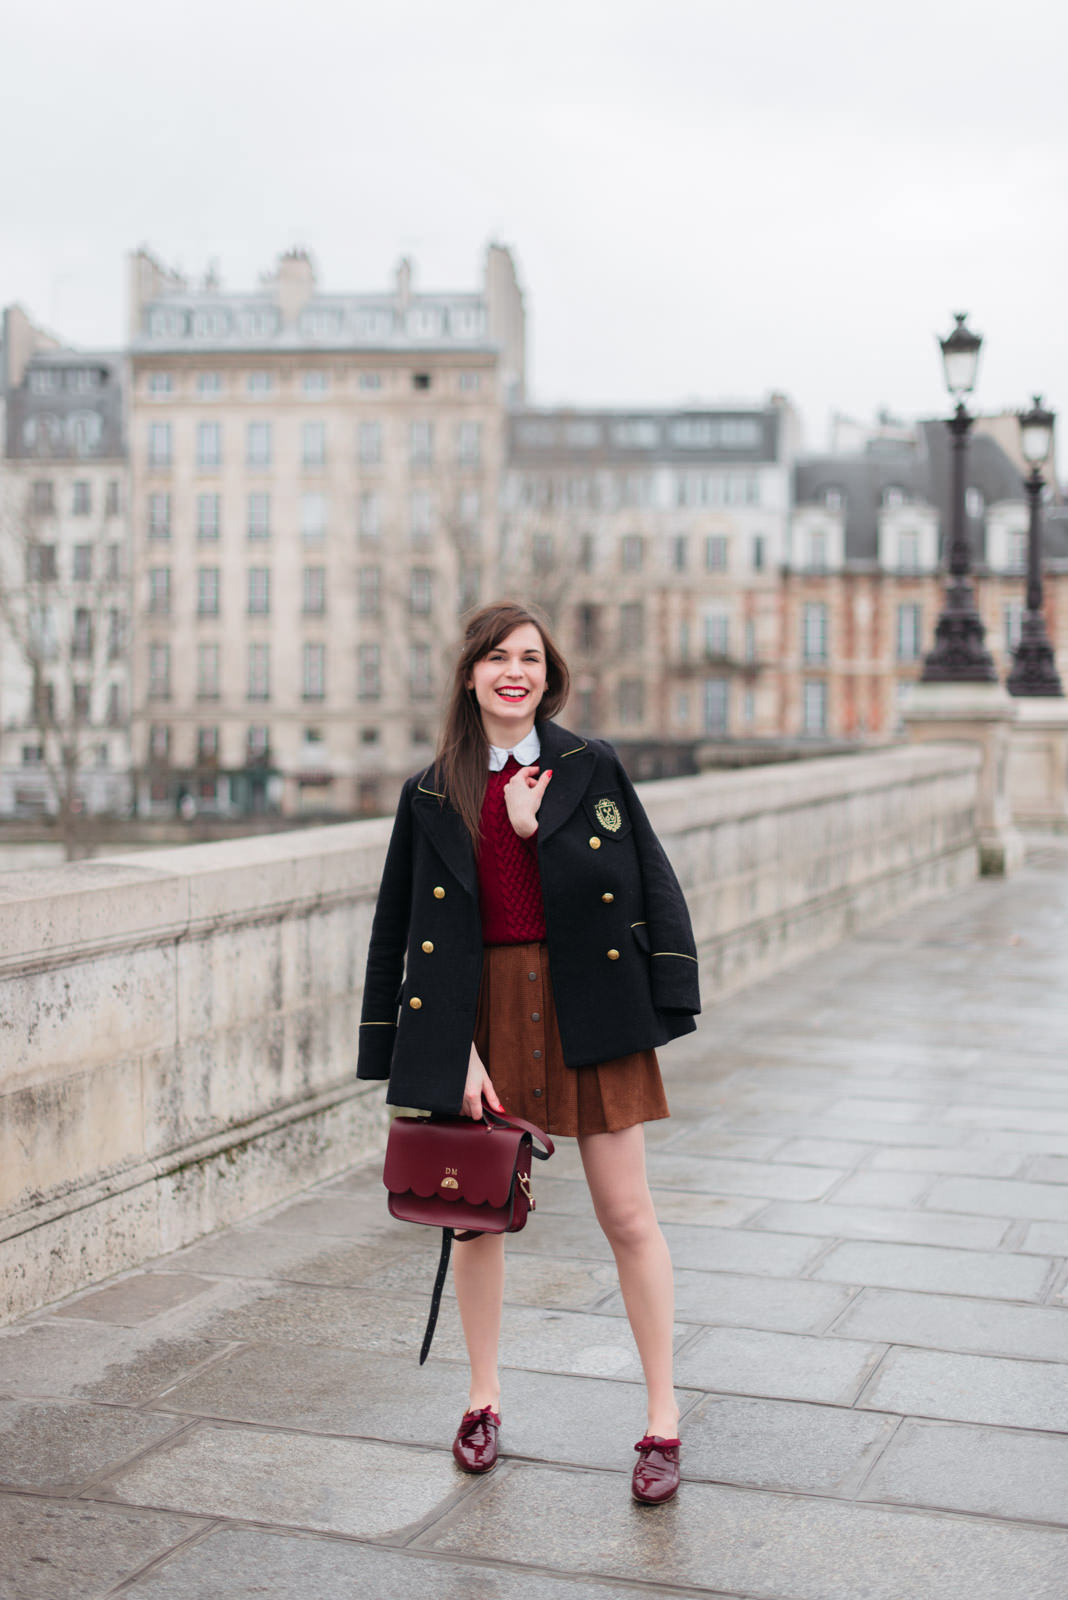 Blog-Mode-And-The-City-Looks-Le-reconfort-des-basiques-7